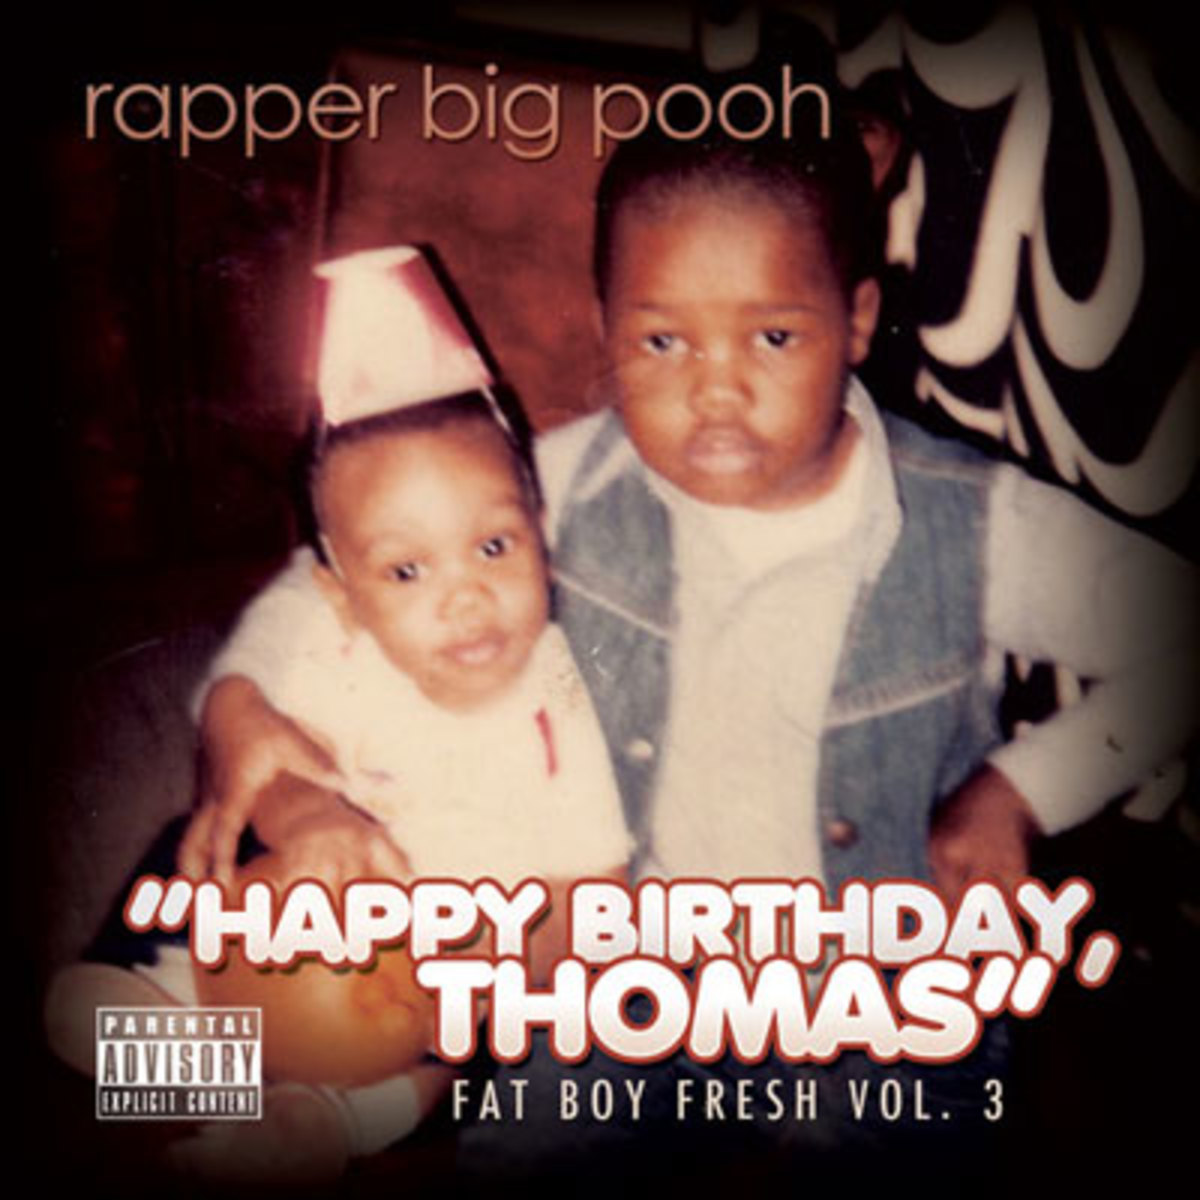 bigpooh-happbirthday3.jpg